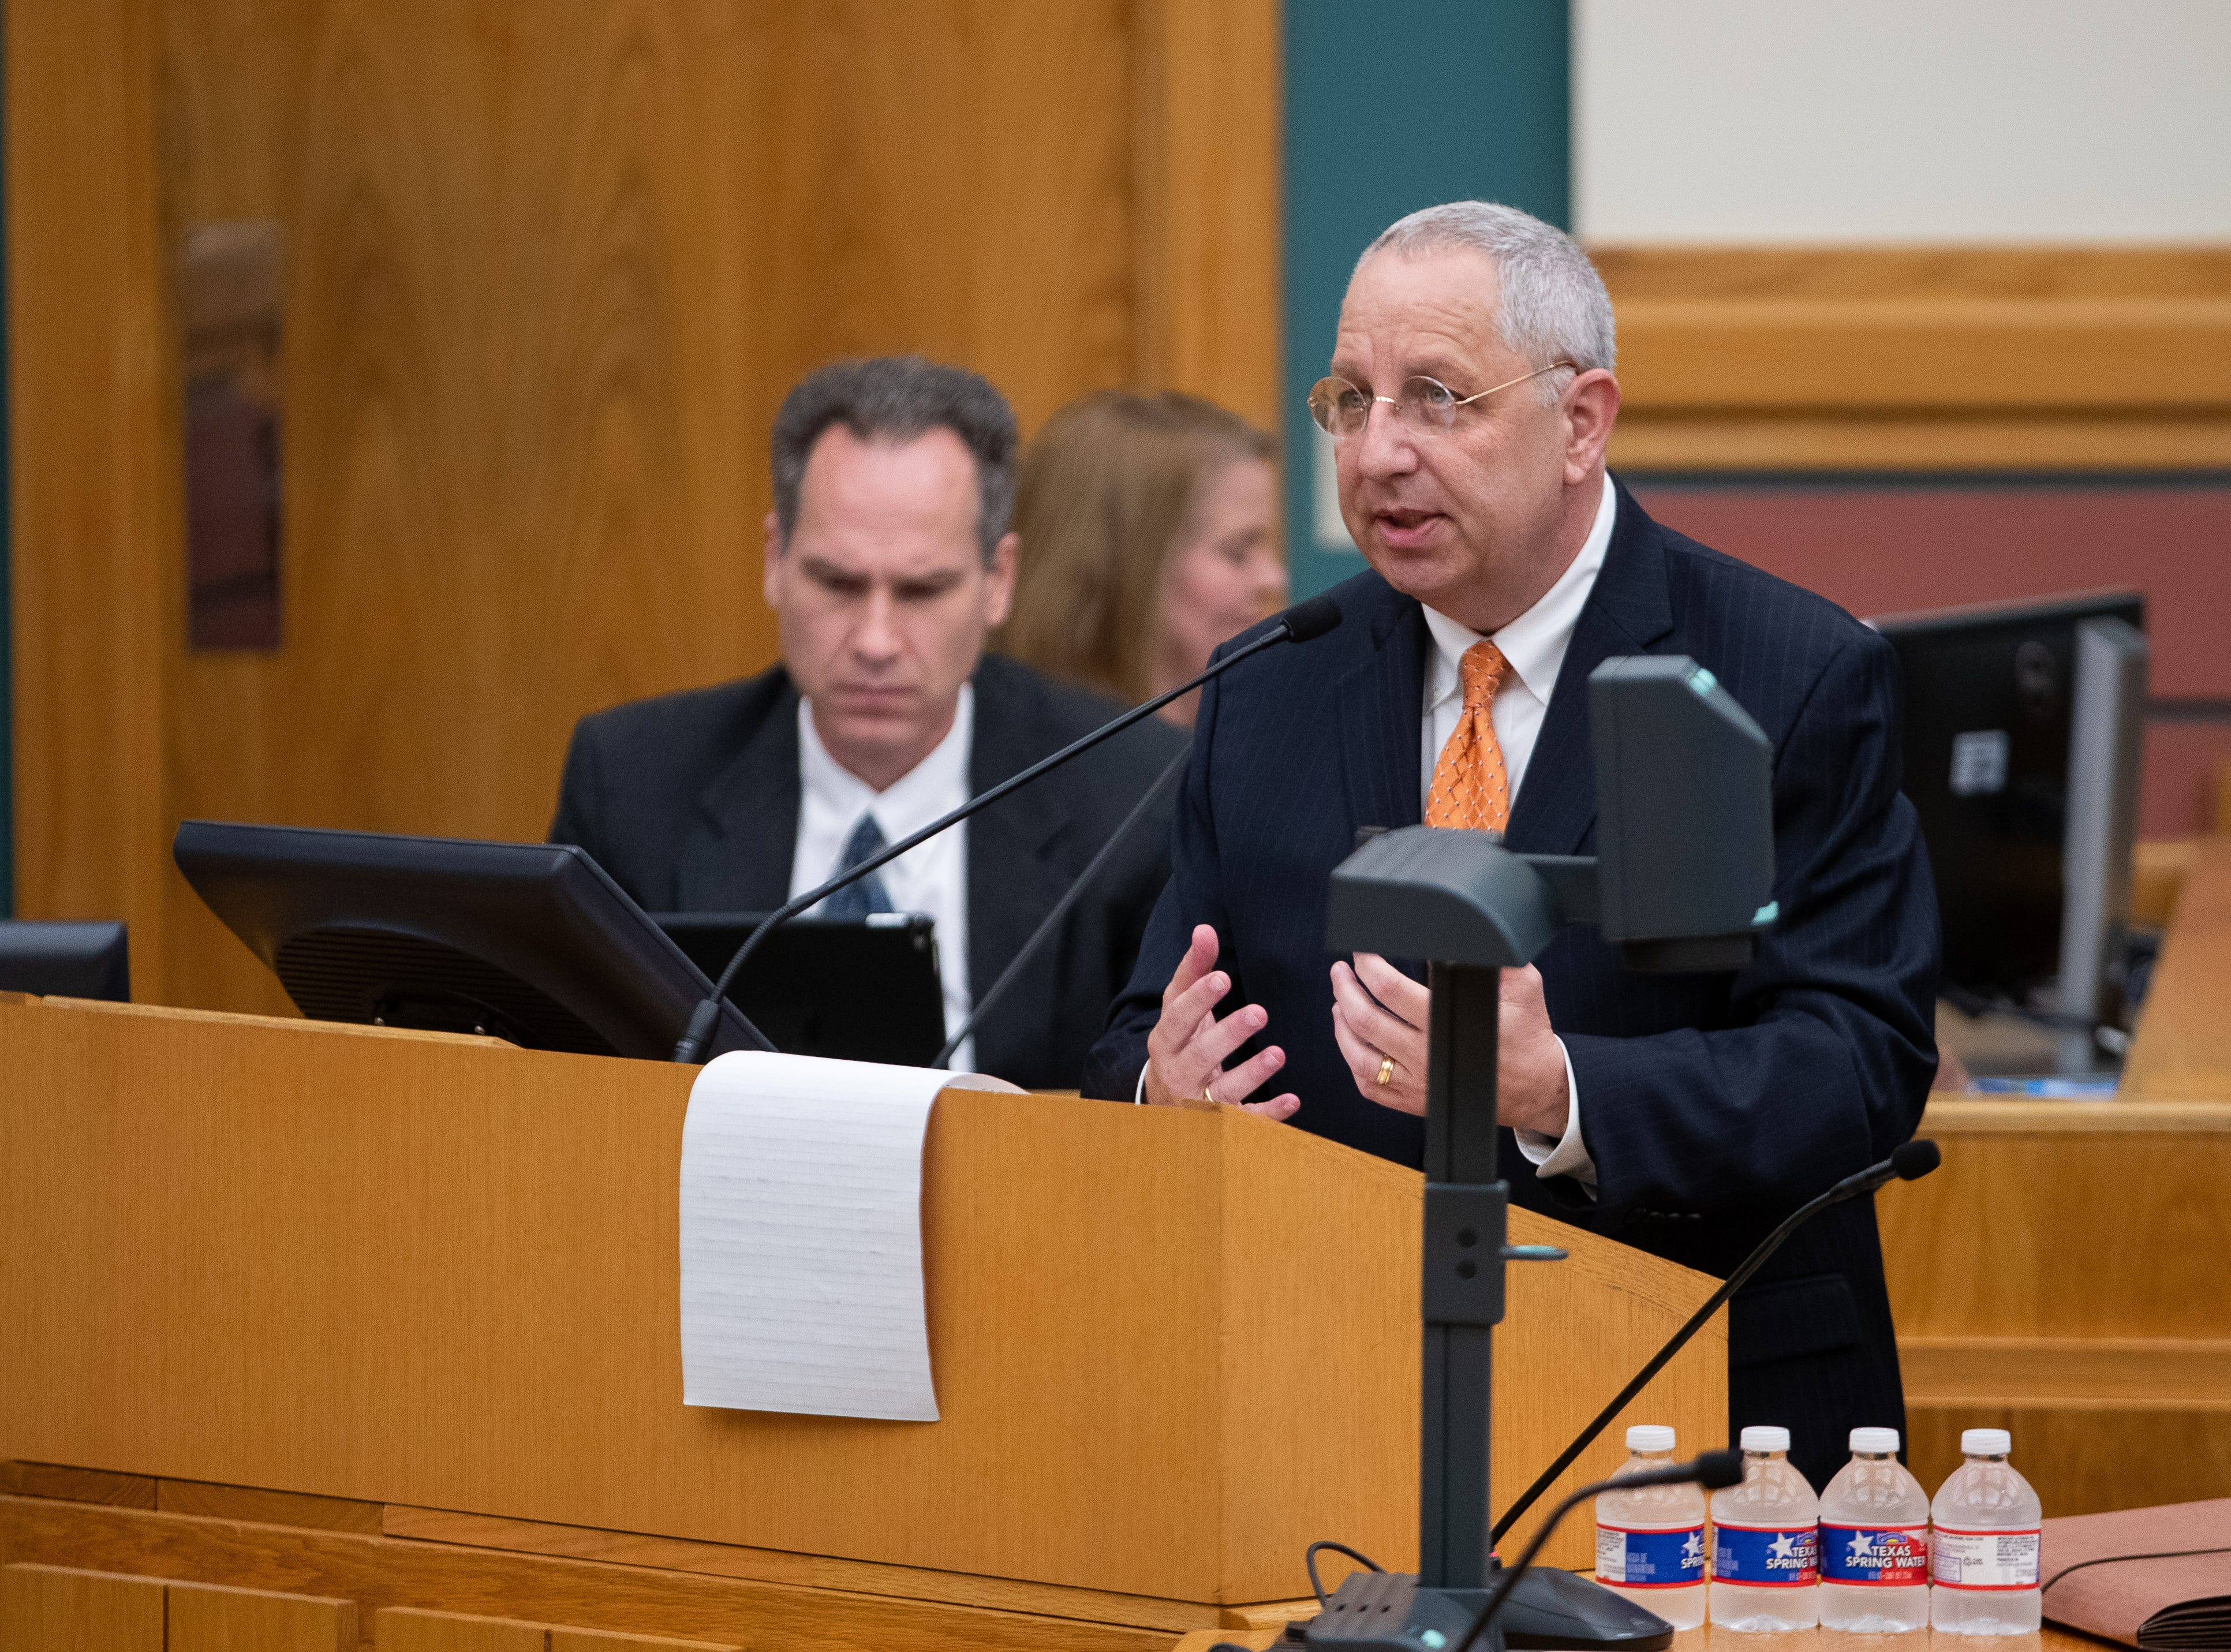 Lee Feldman is one of four finalists for Corpus Christi's city manager position answers questions from the City Council at the start of their meeting on Tuesday, April 16, 2019.